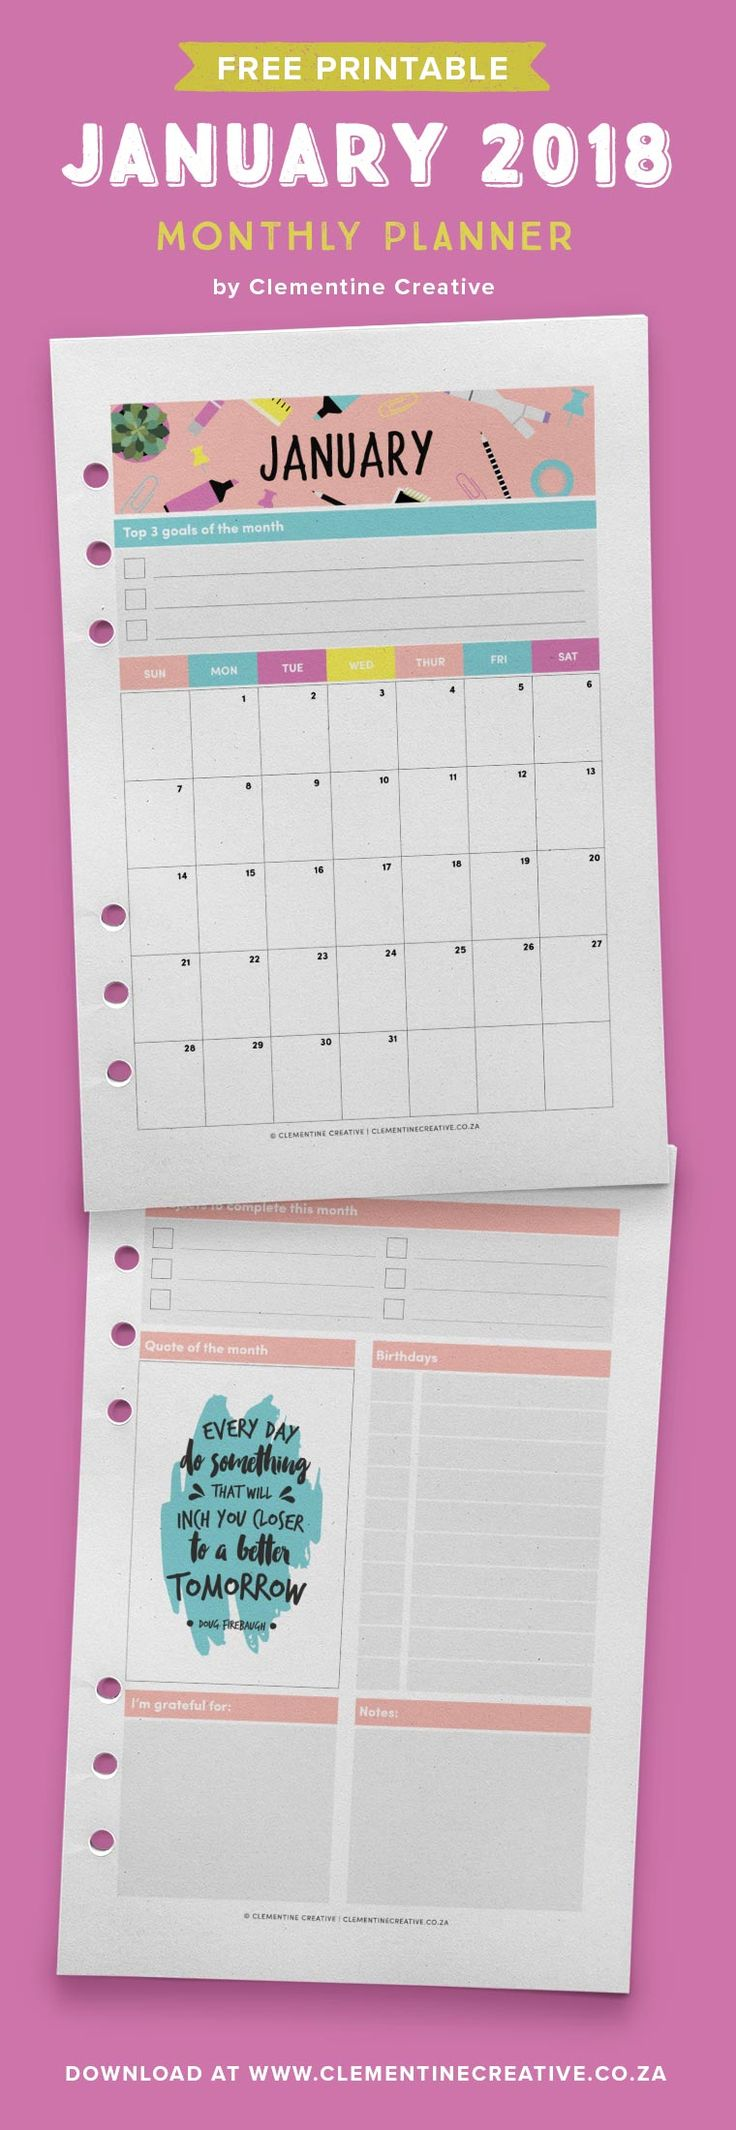 Free printable January 2018 calendar and monthly planner. Available in A4, A5, Personal and Pocket sizes. Get yours by signing up!